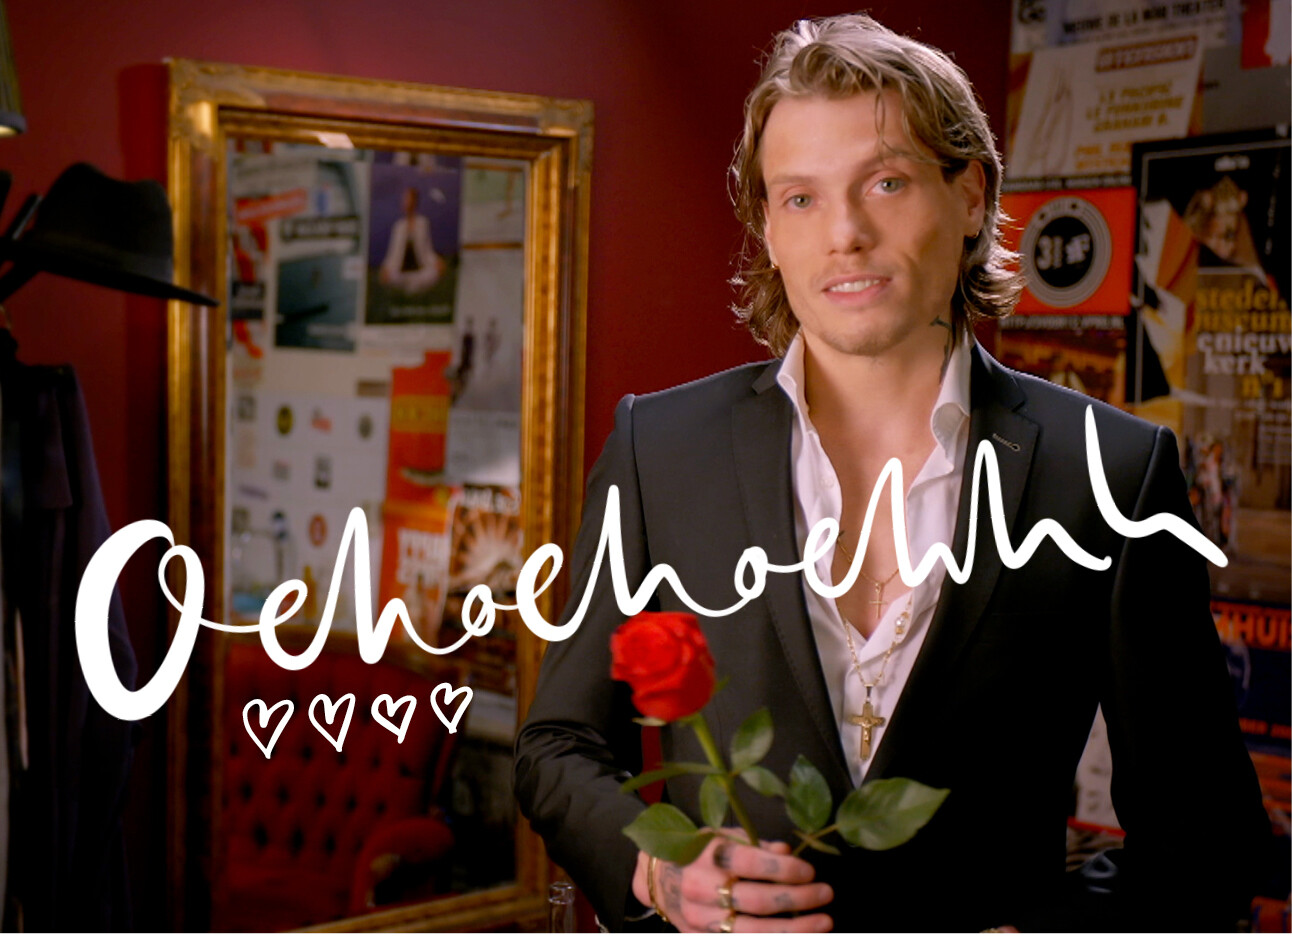 Oh yes: Tony Junior is de Bachelor